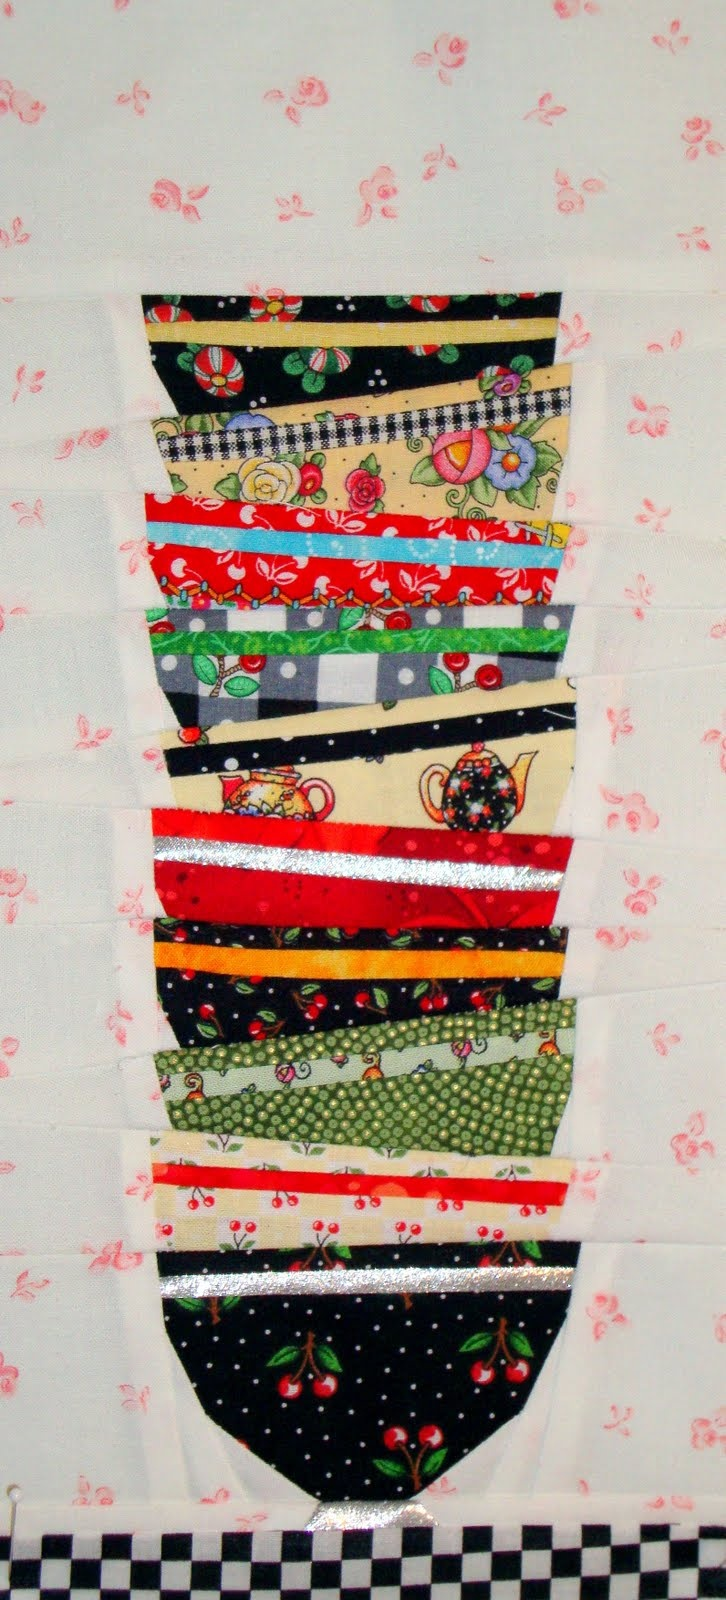 Mary's fabrics...I just bought the black dot Cherry fabric last week to make an Apron.  Can't wait to finish it.